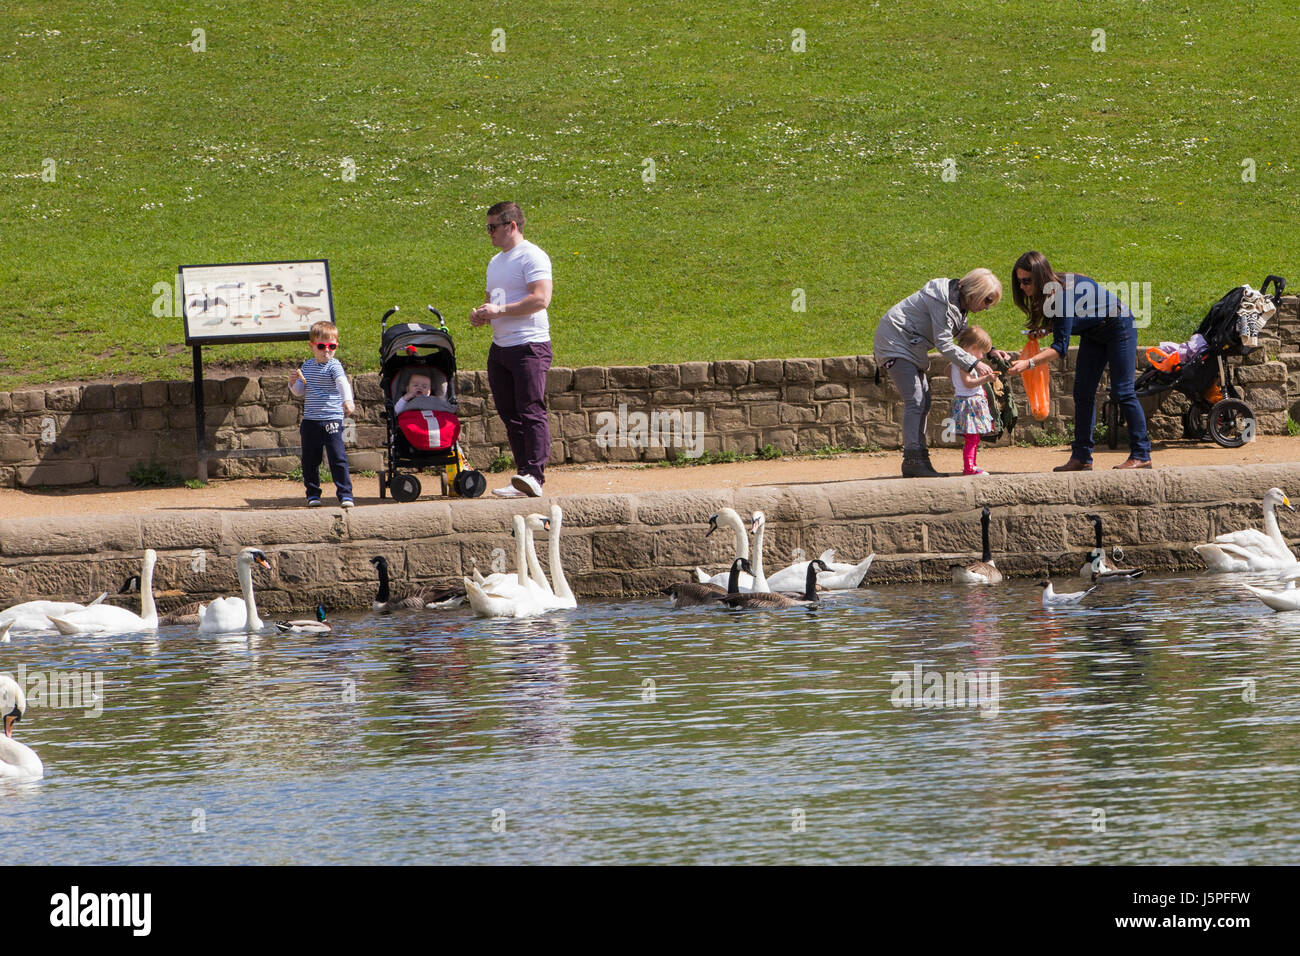 Leeds, UK. 18th May, 2017. Children feeding the ducks and swans at Roundhay Park in Leeds on 18 May 2017.  A bright - Stock Image